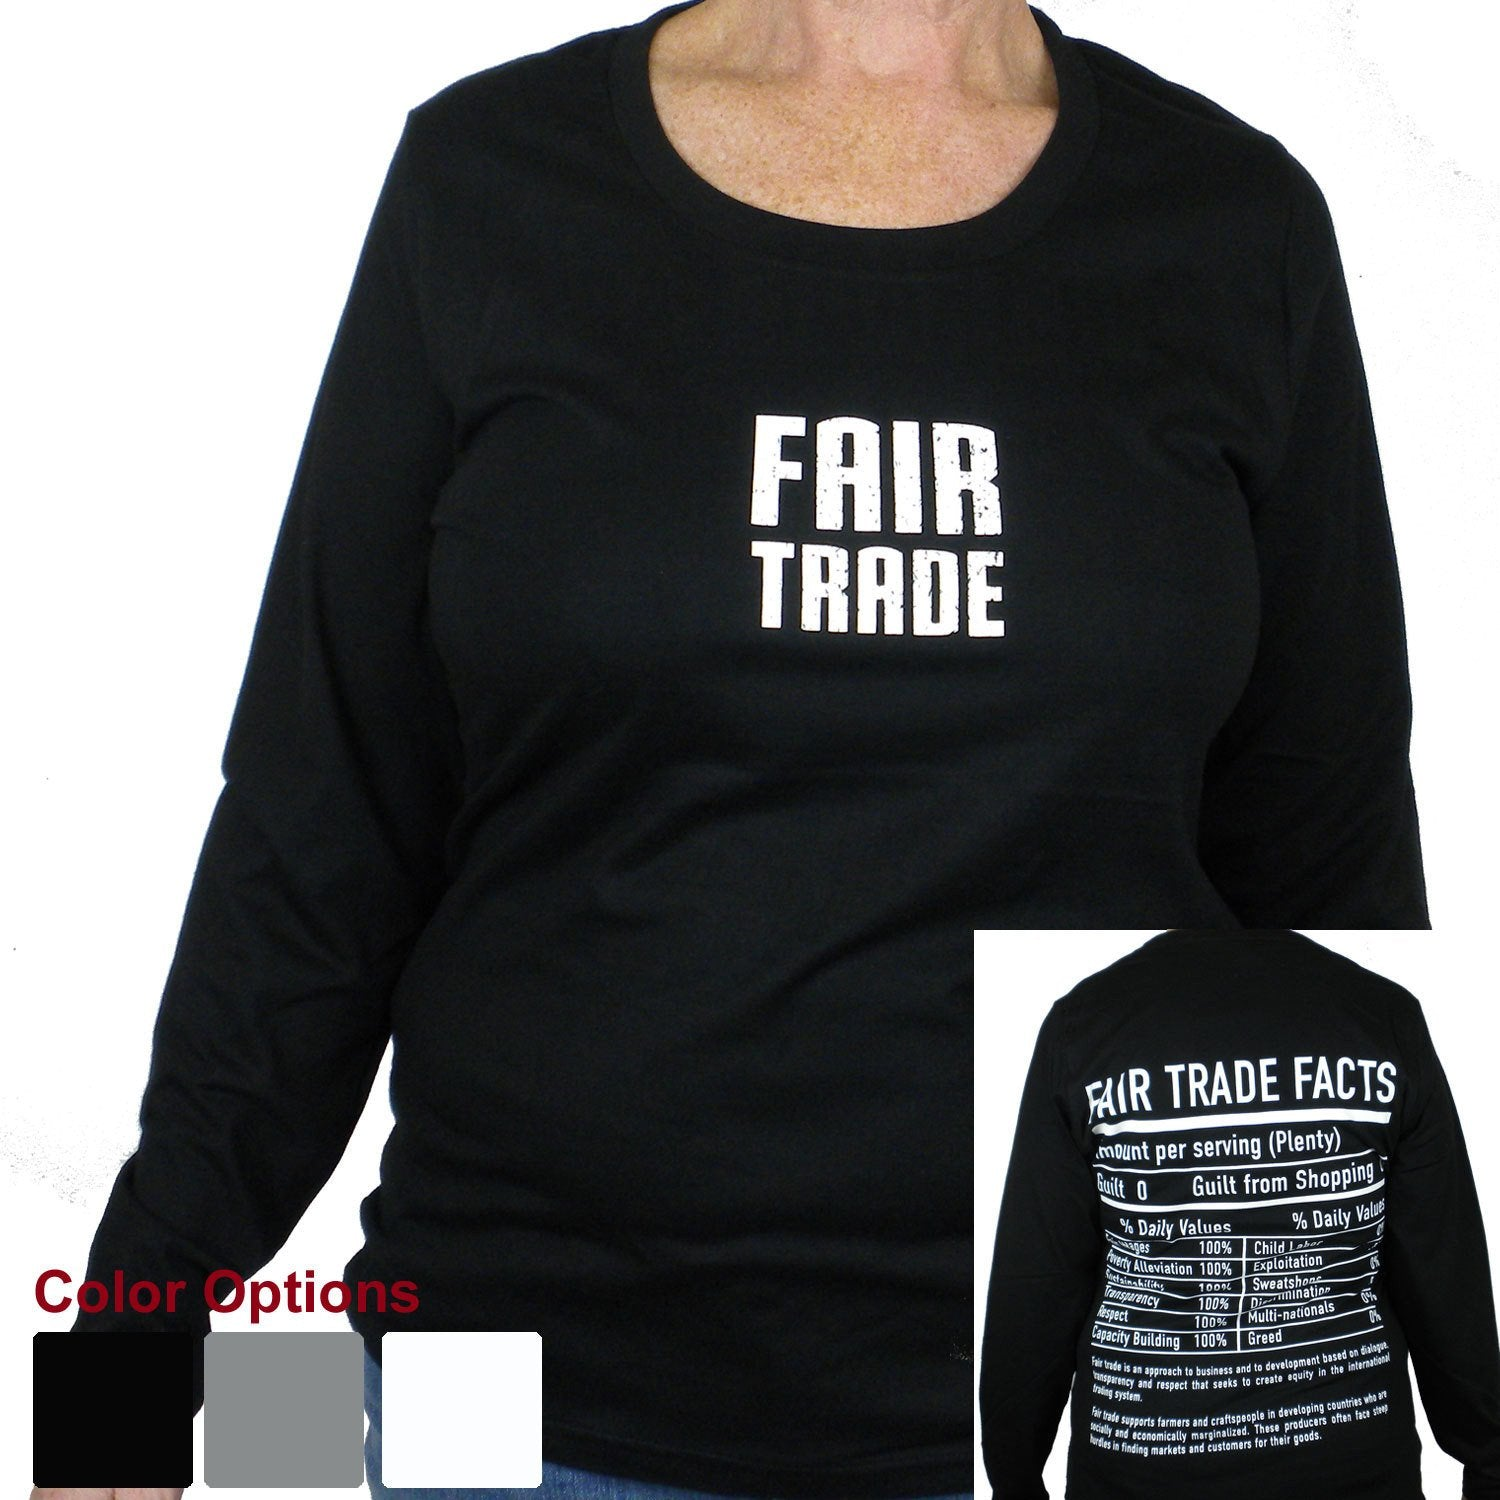 Black Tee Shirt Long Sleeve Small FT Front - FT Facts on Back - Small